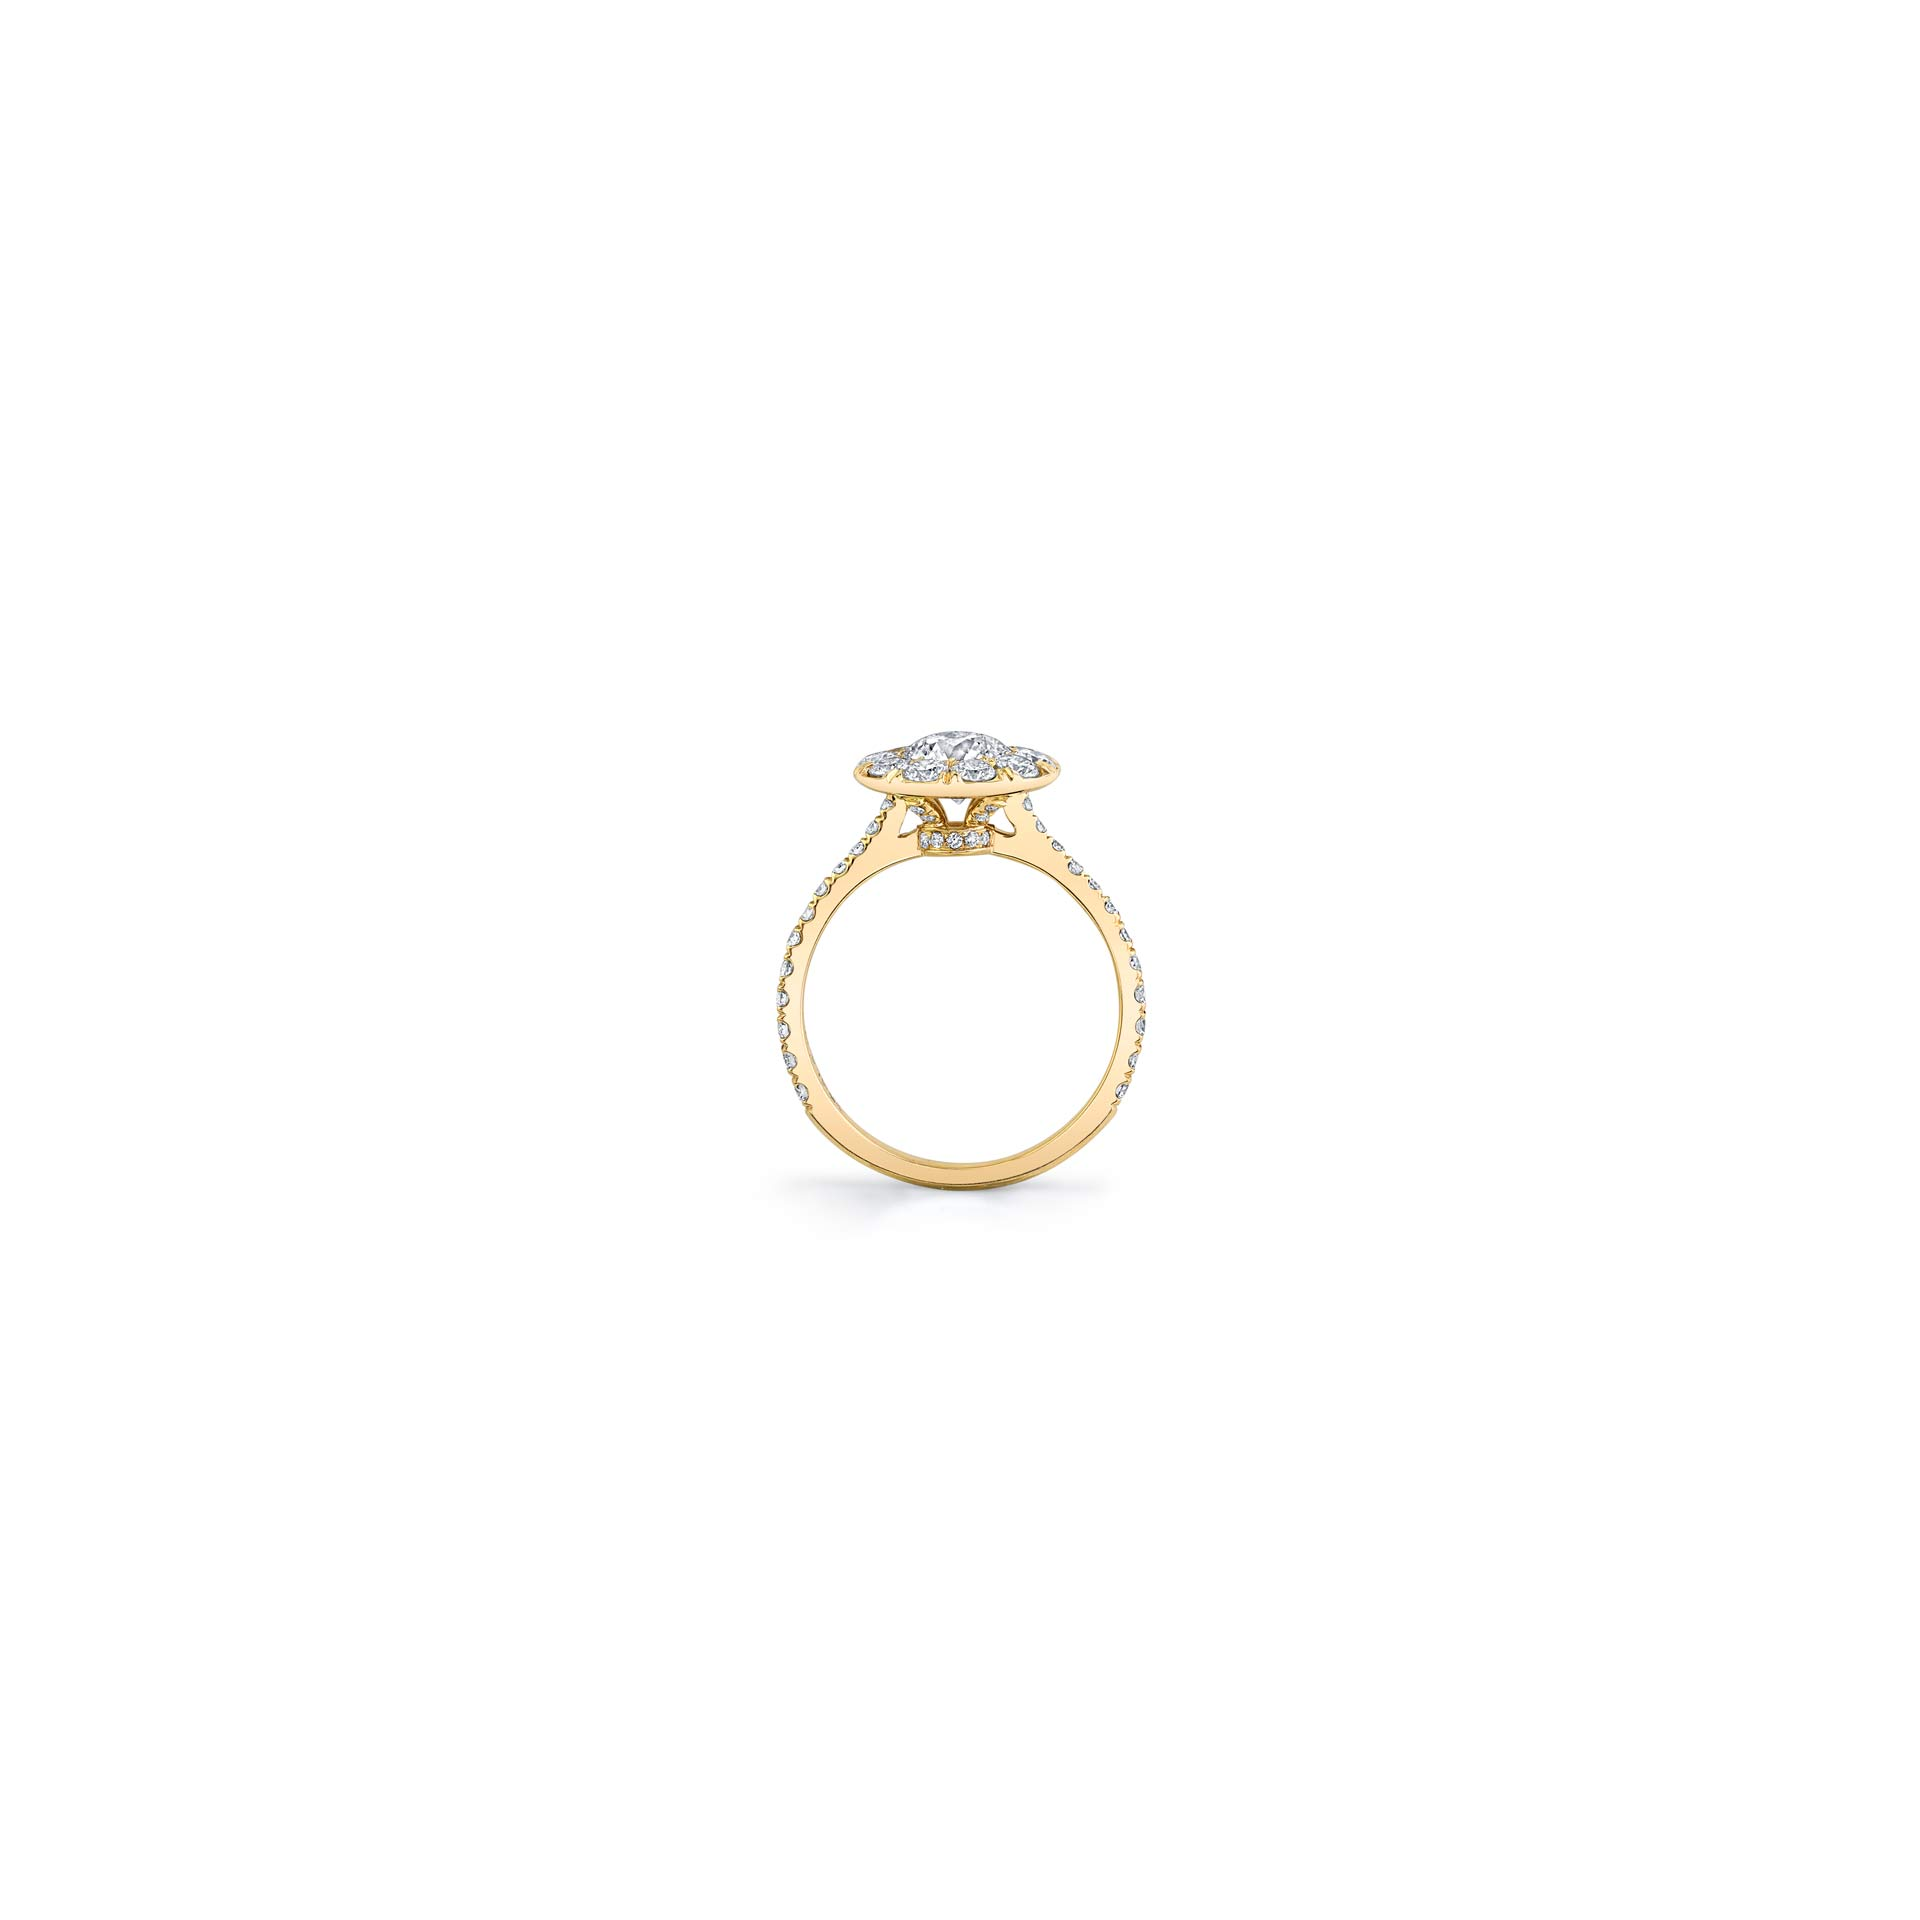 Eloise Round Brilliant Seamless Solitaire® Engagement Ring with diamond pavé in 18k Yellow Gold Standing View by Oui by Jean Dousset